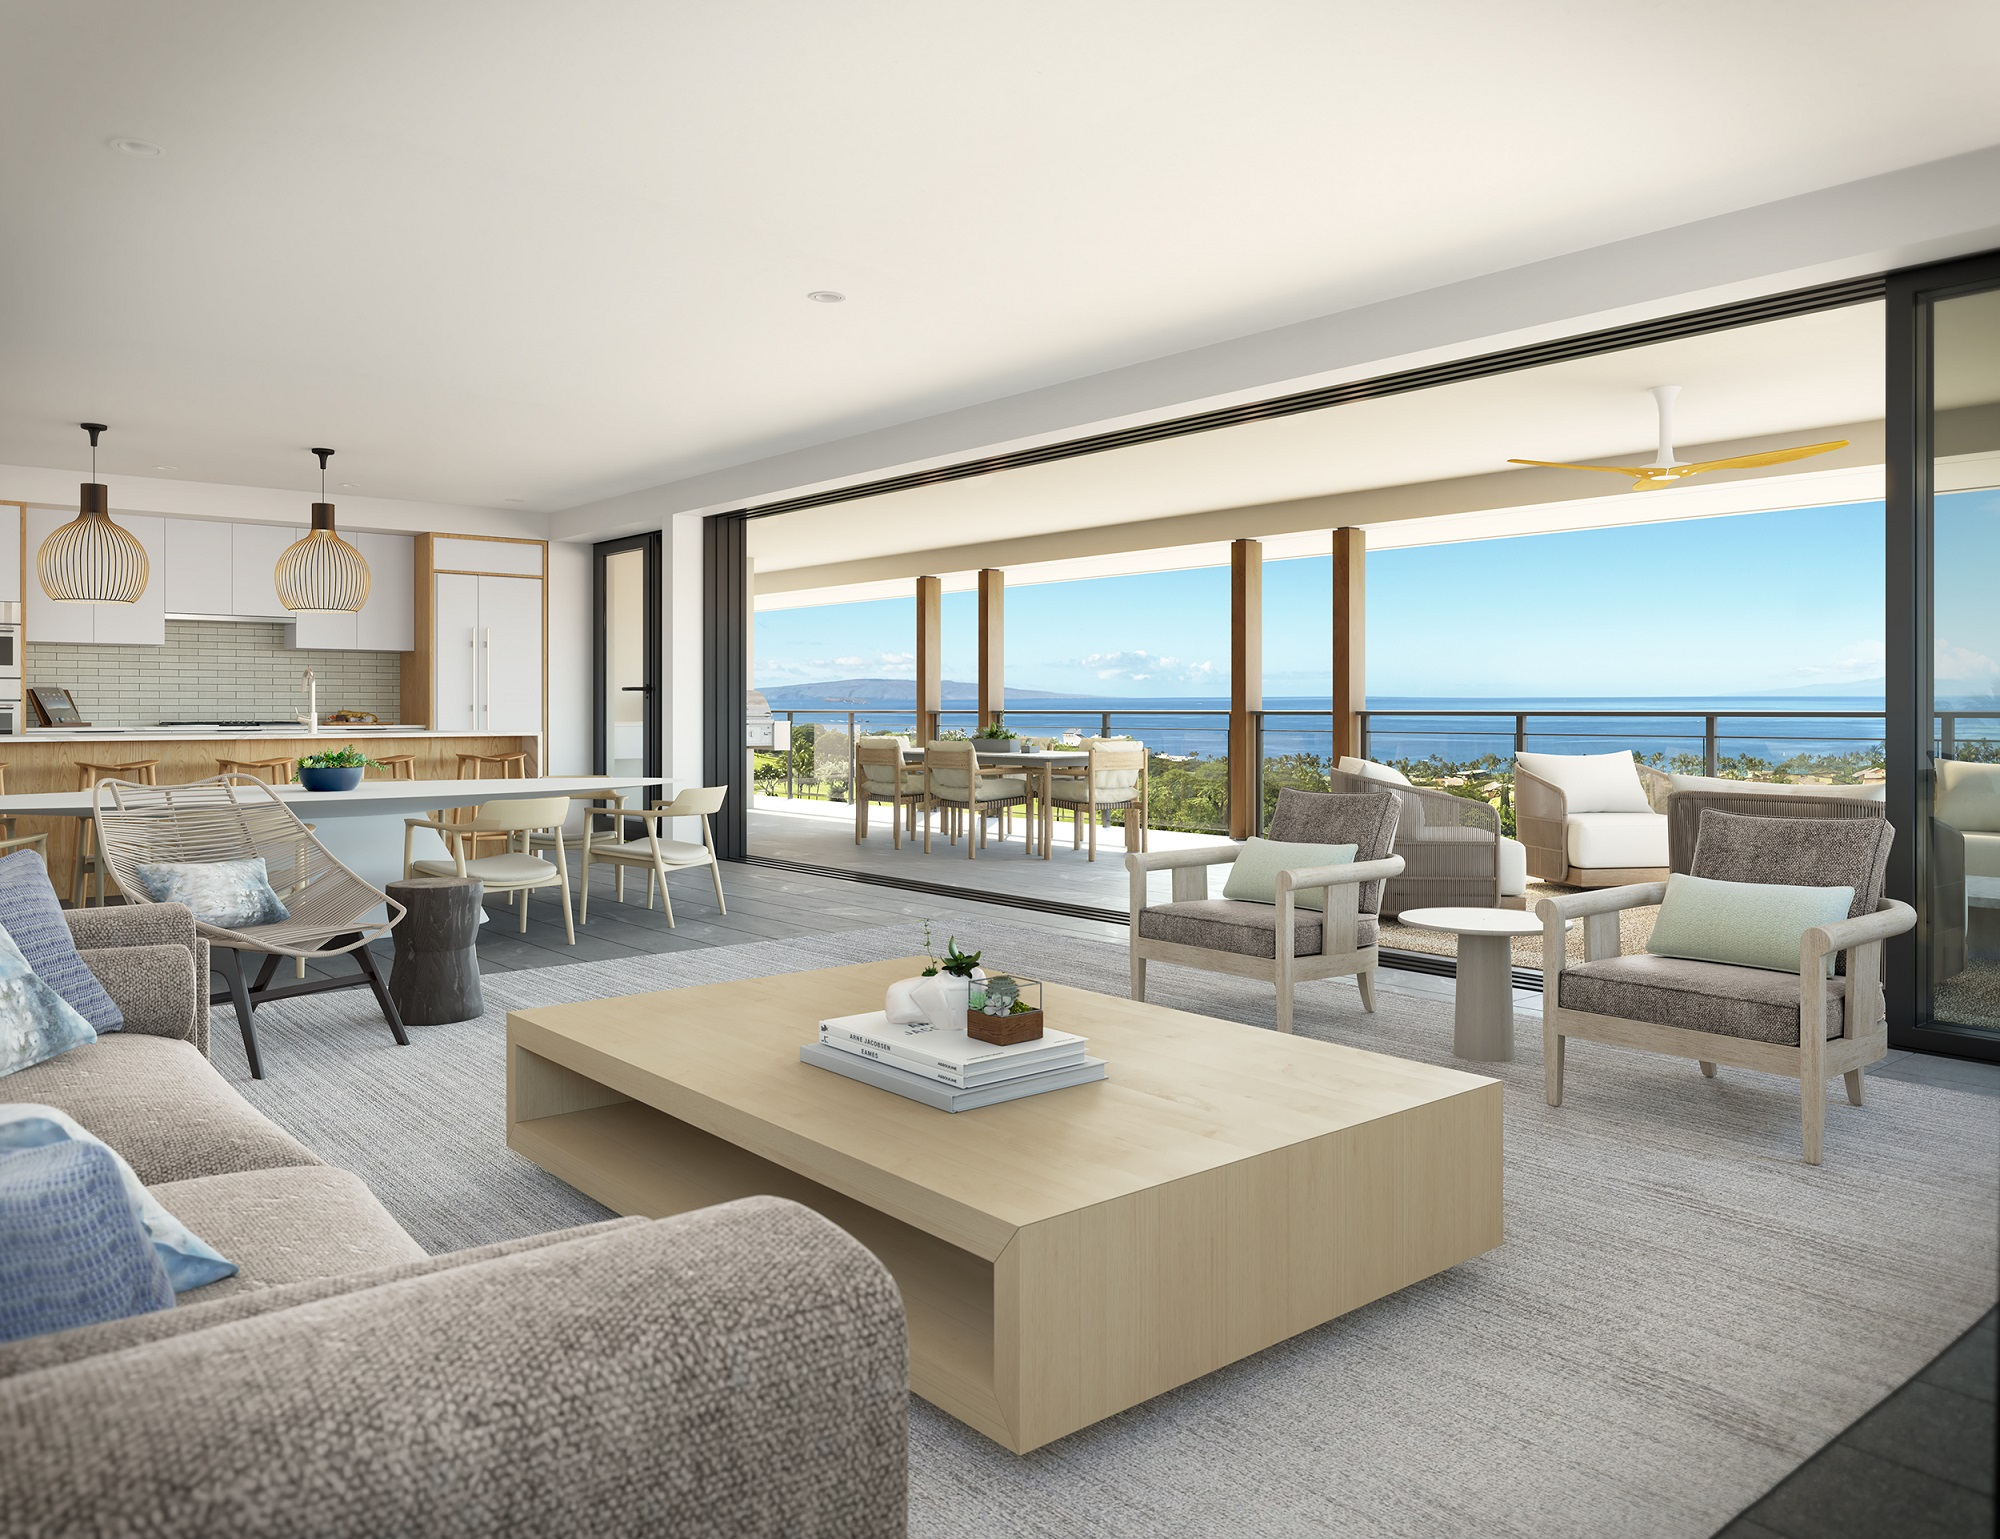 Ledcor Launches Sales at Maui's New Luxury Residential Development in Wailea